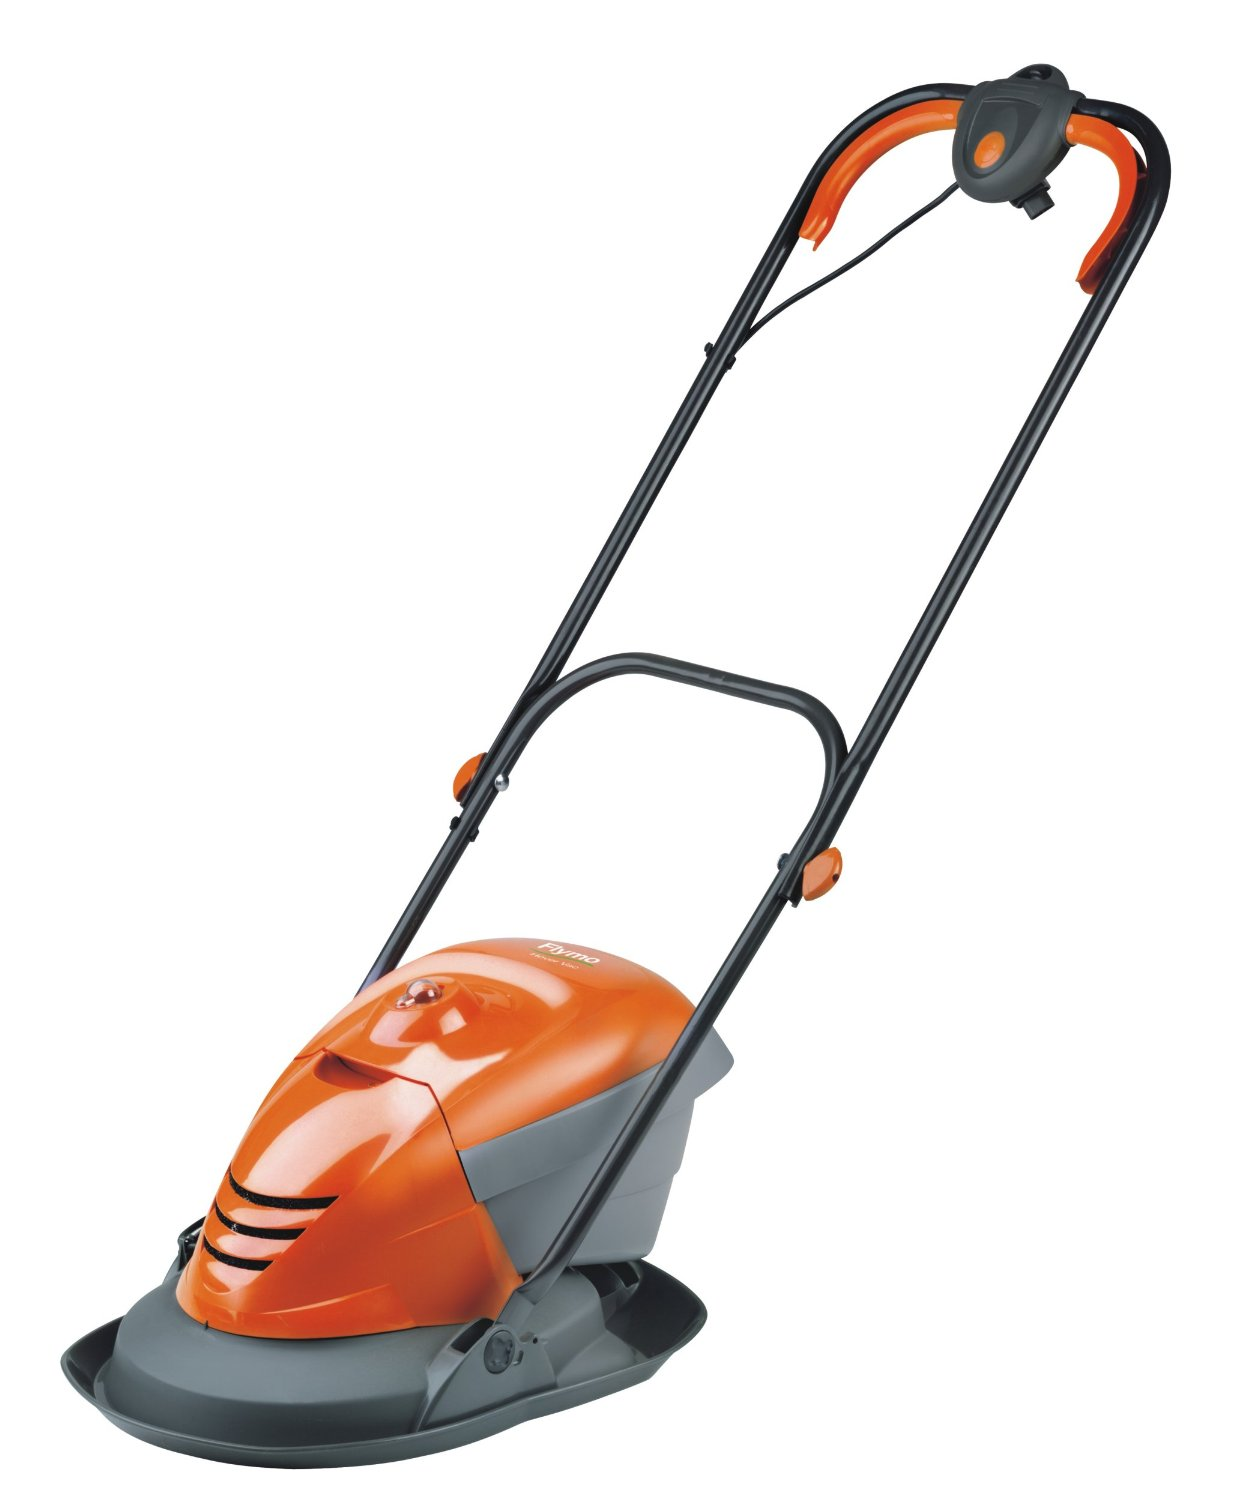 flymo hovervac 900w electric hover collecting lawnmower. Black Bedroom Furniture Sets. Home Design Ideas